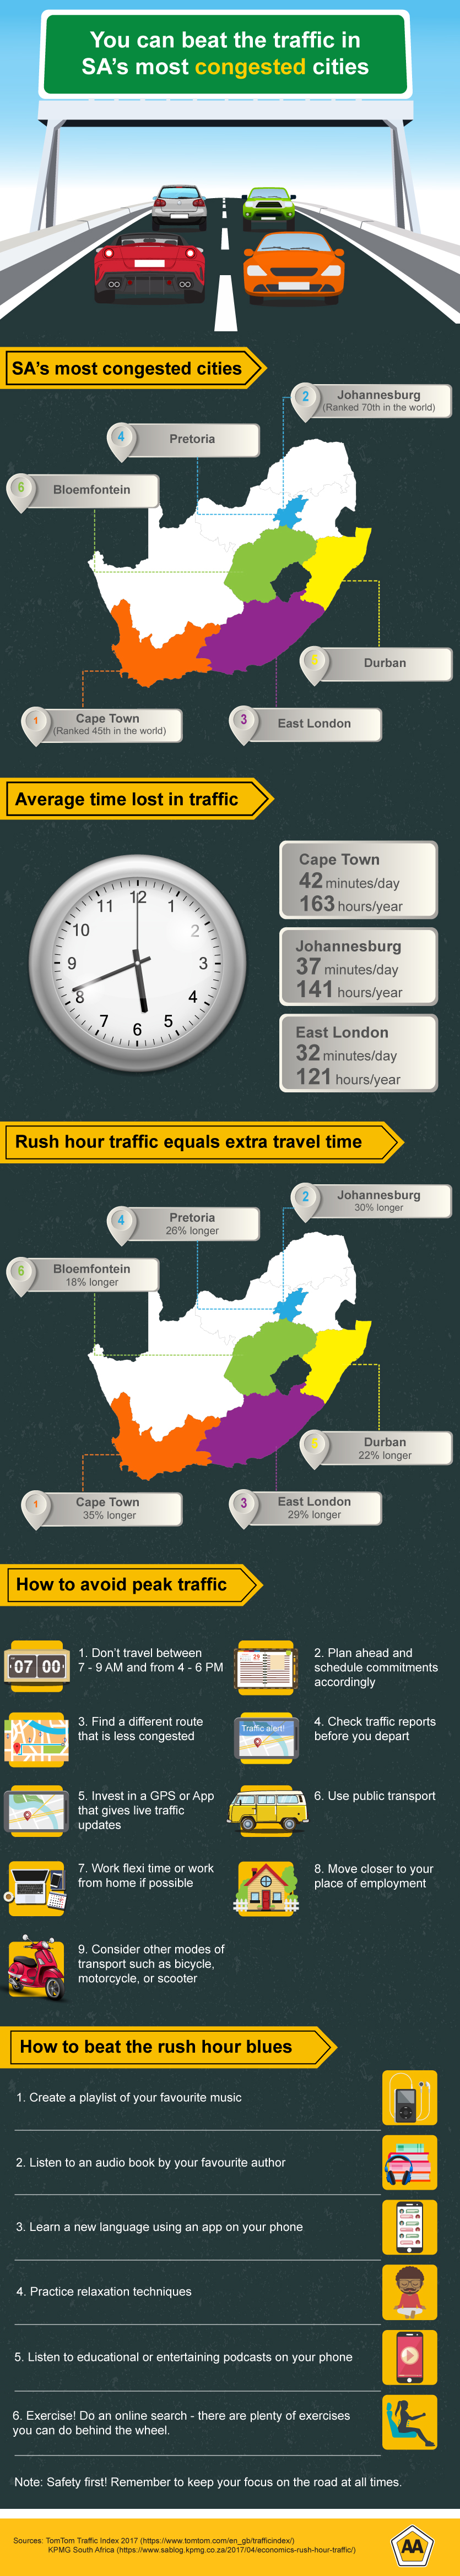 Top tips for beating the traffic in your city